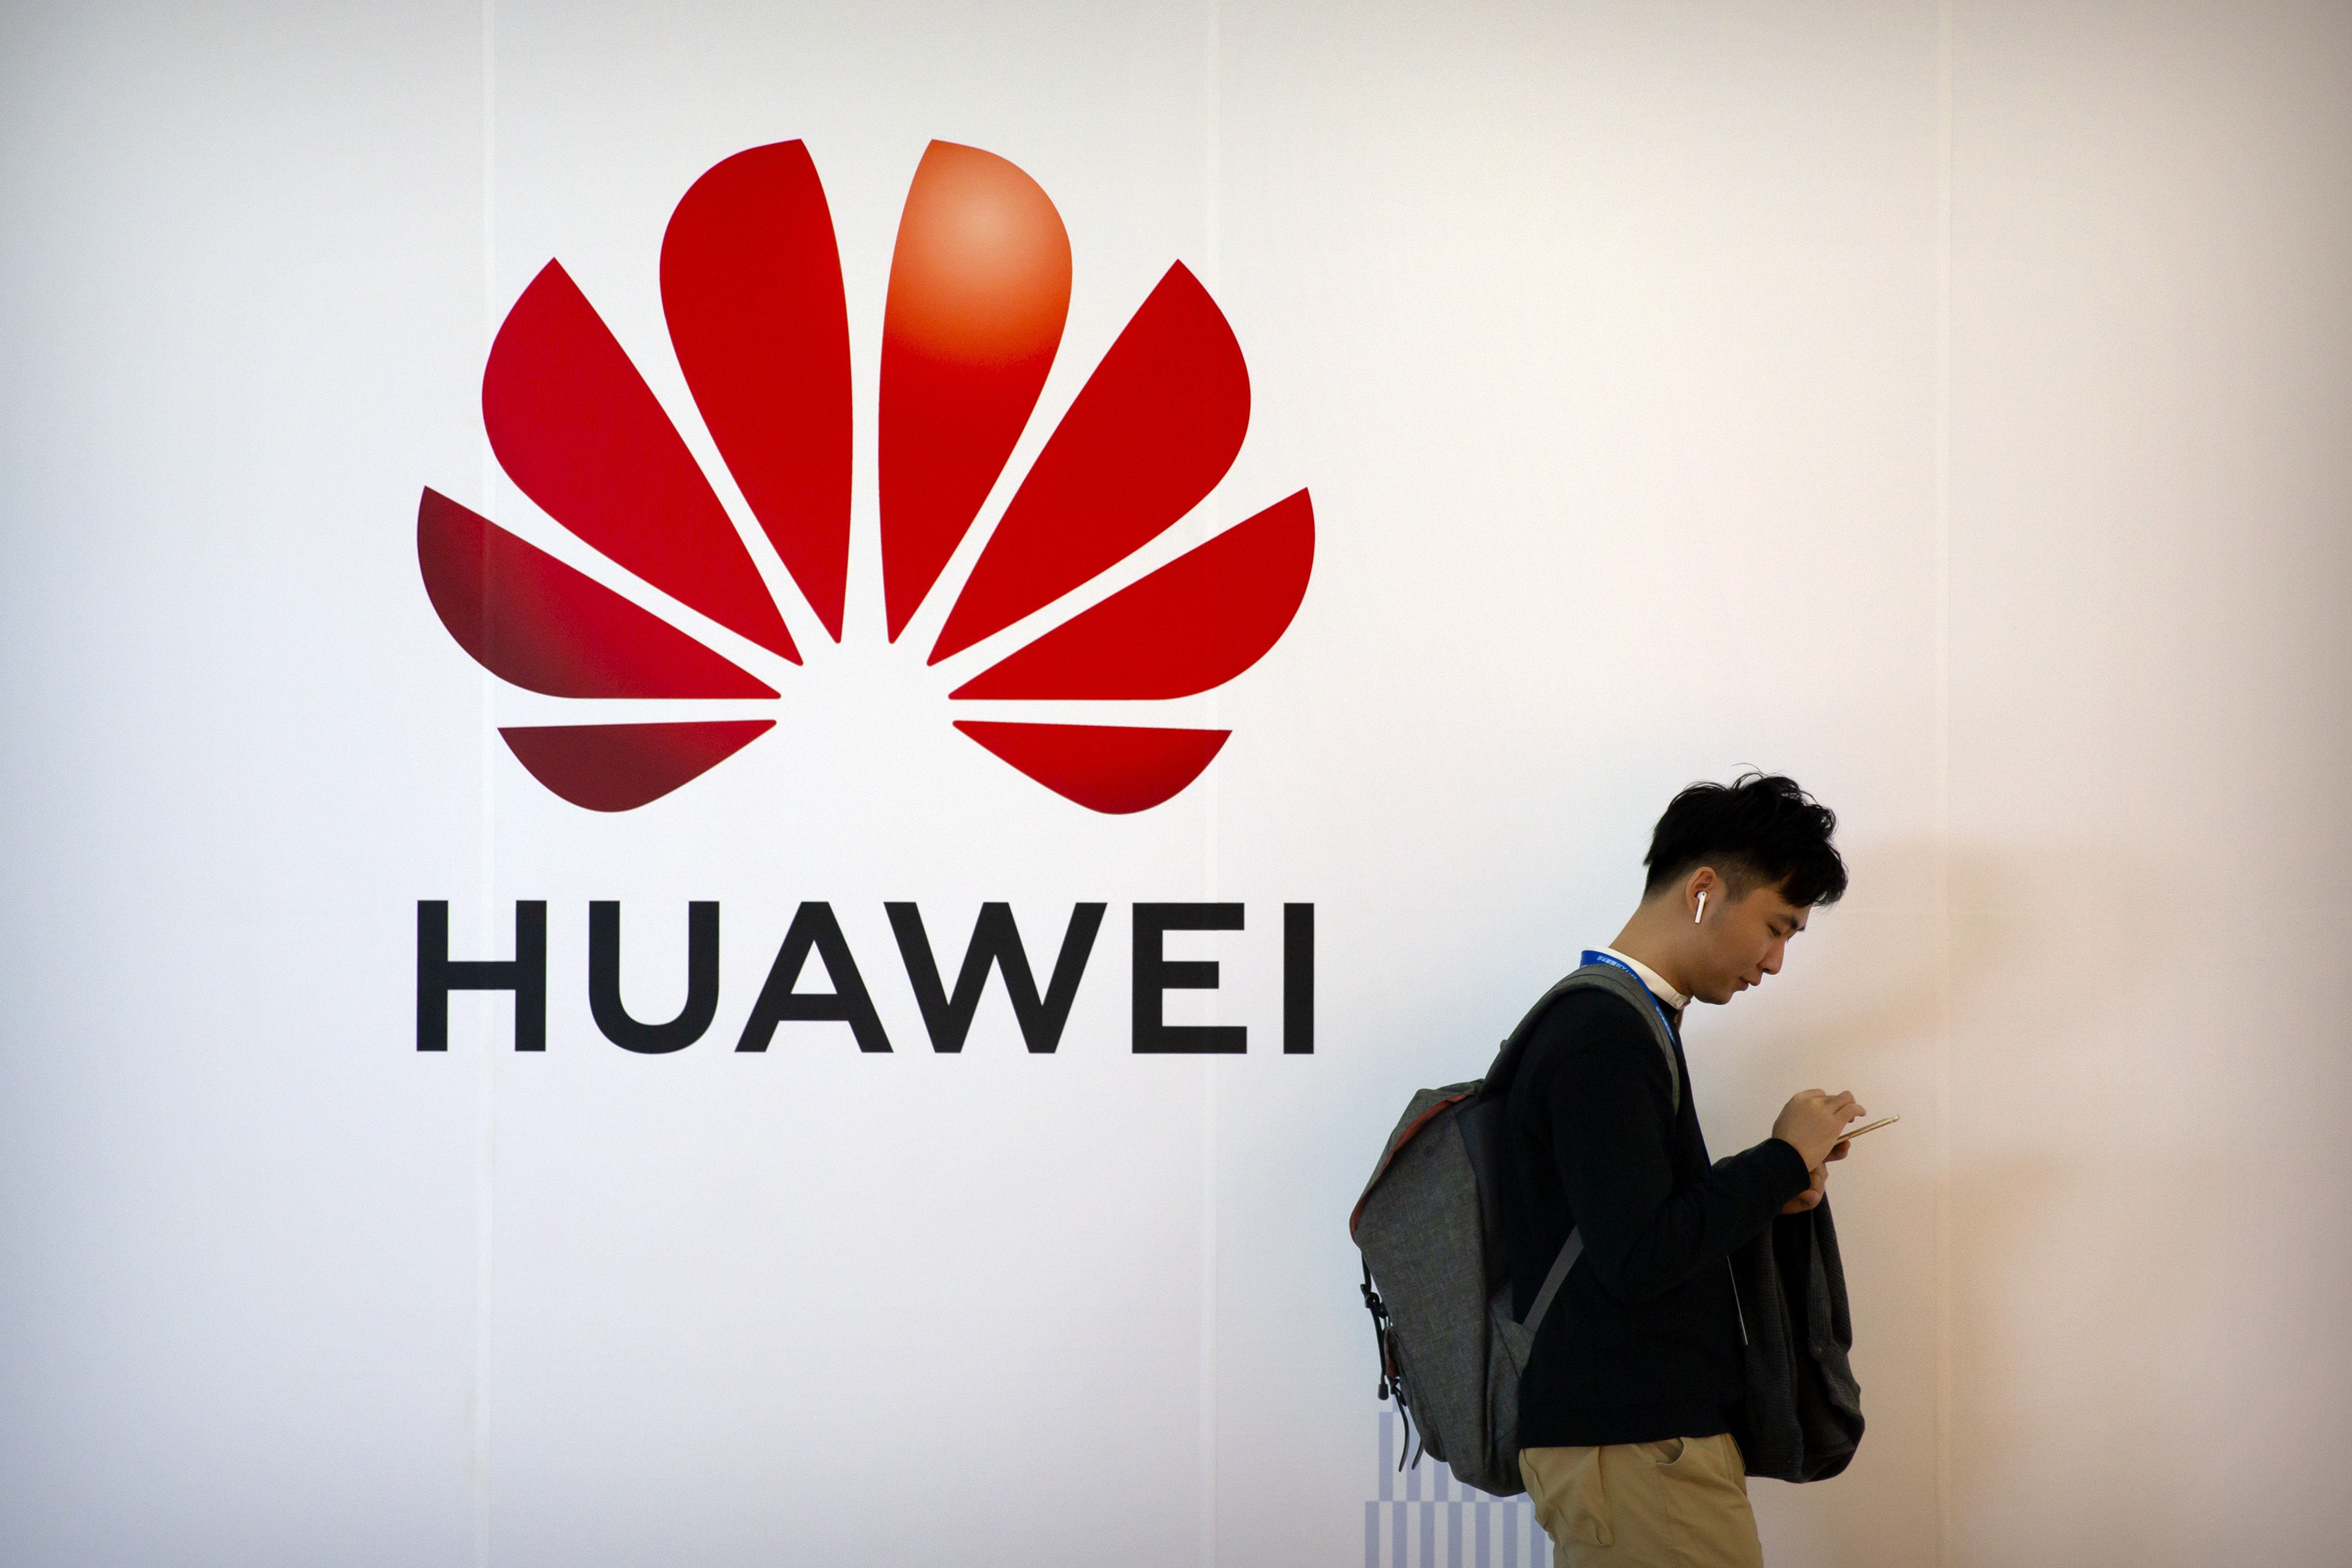 A man uses his smartphone as he stands near a billboard for Chinese technology firm Huawei at the PT Expo in Beijing on Oct. 31, 2019.